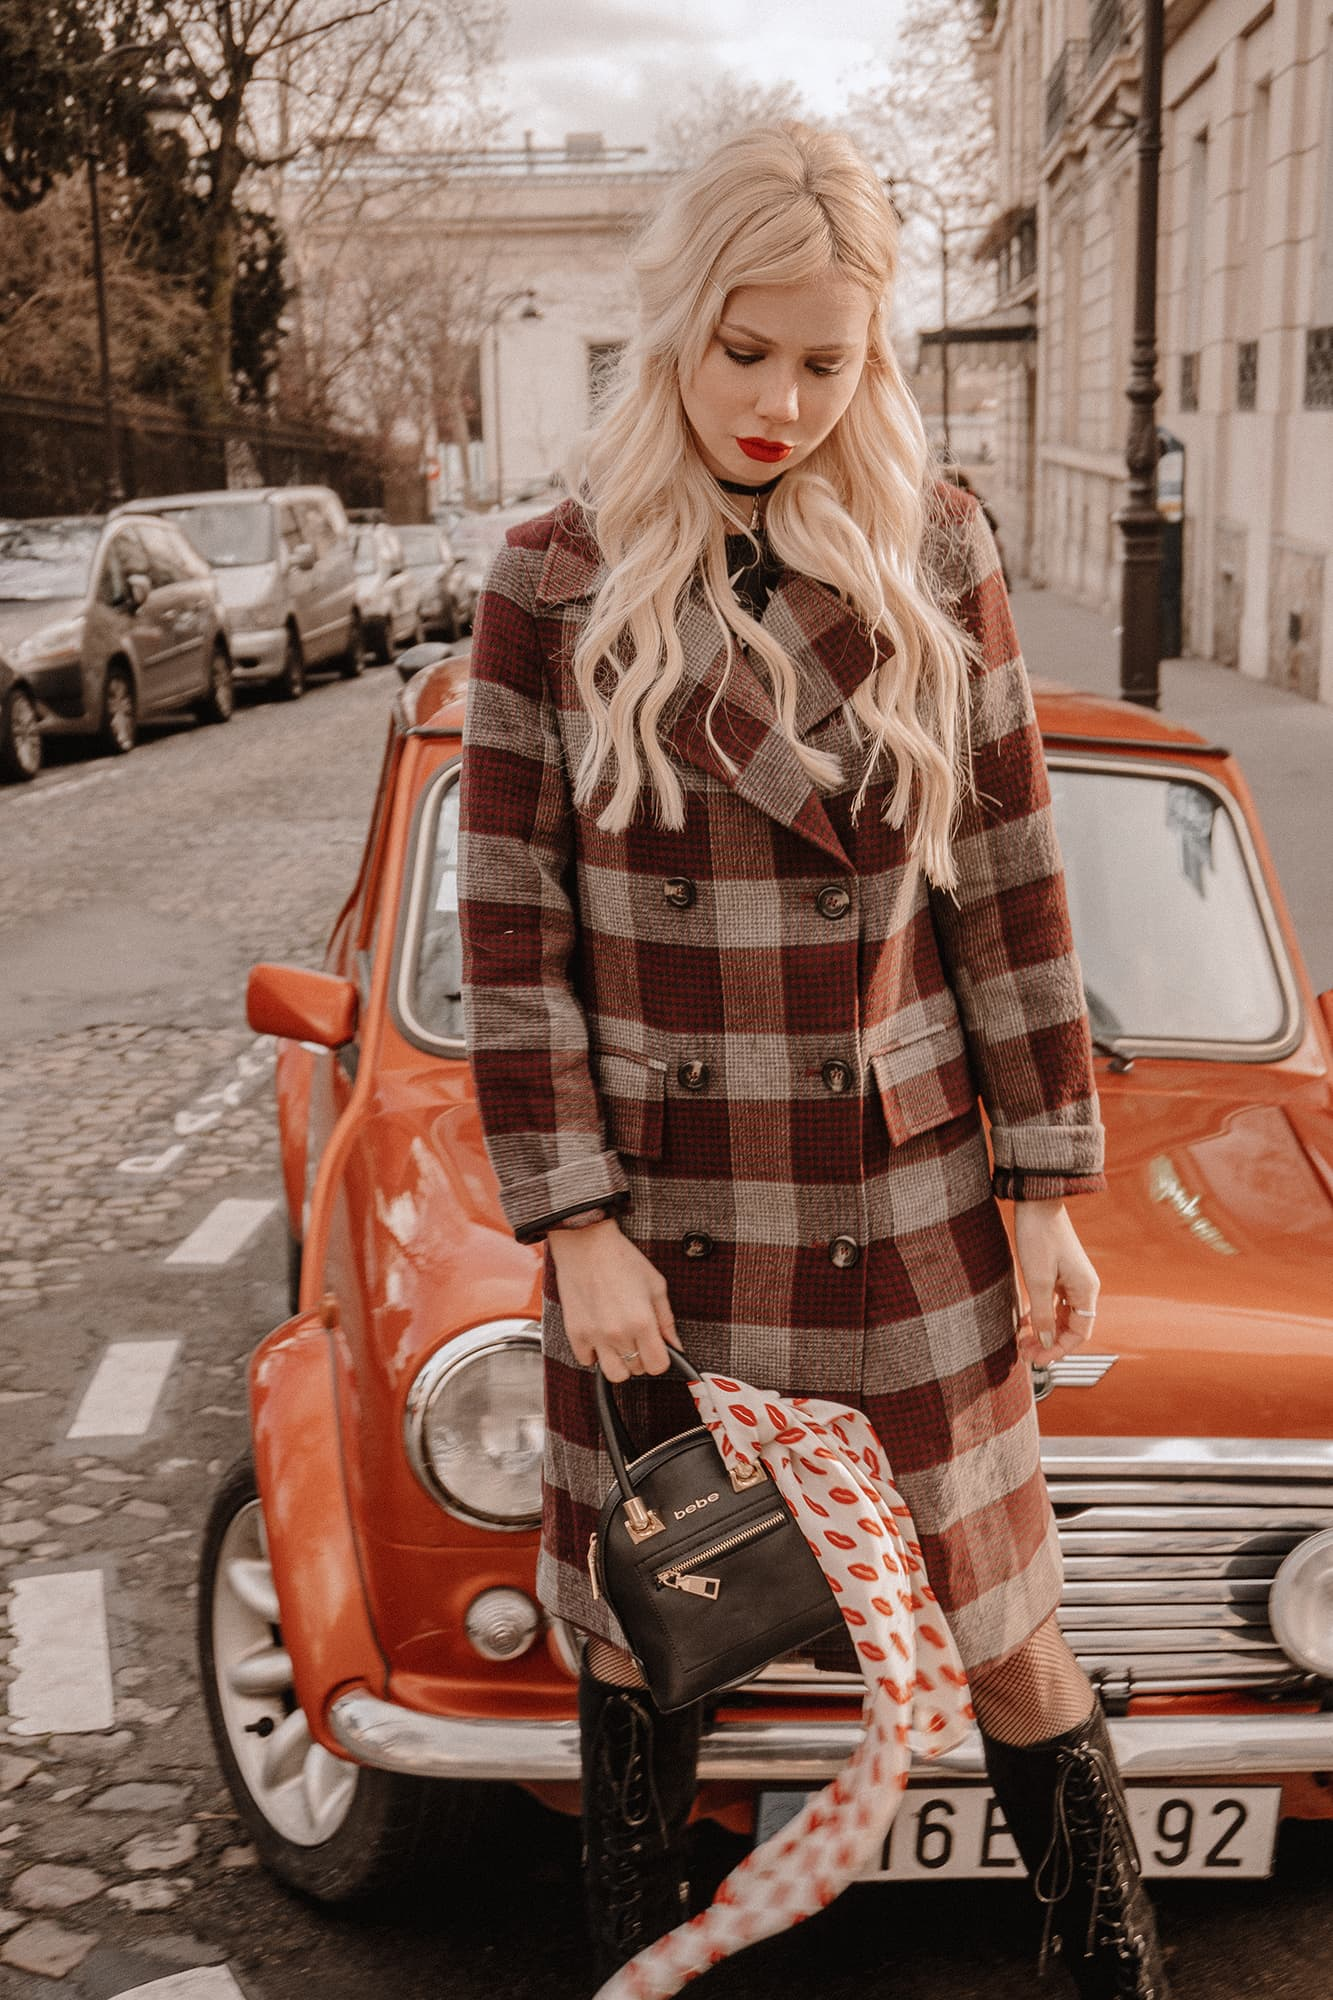 SarahLoven Paris Vintage Car3